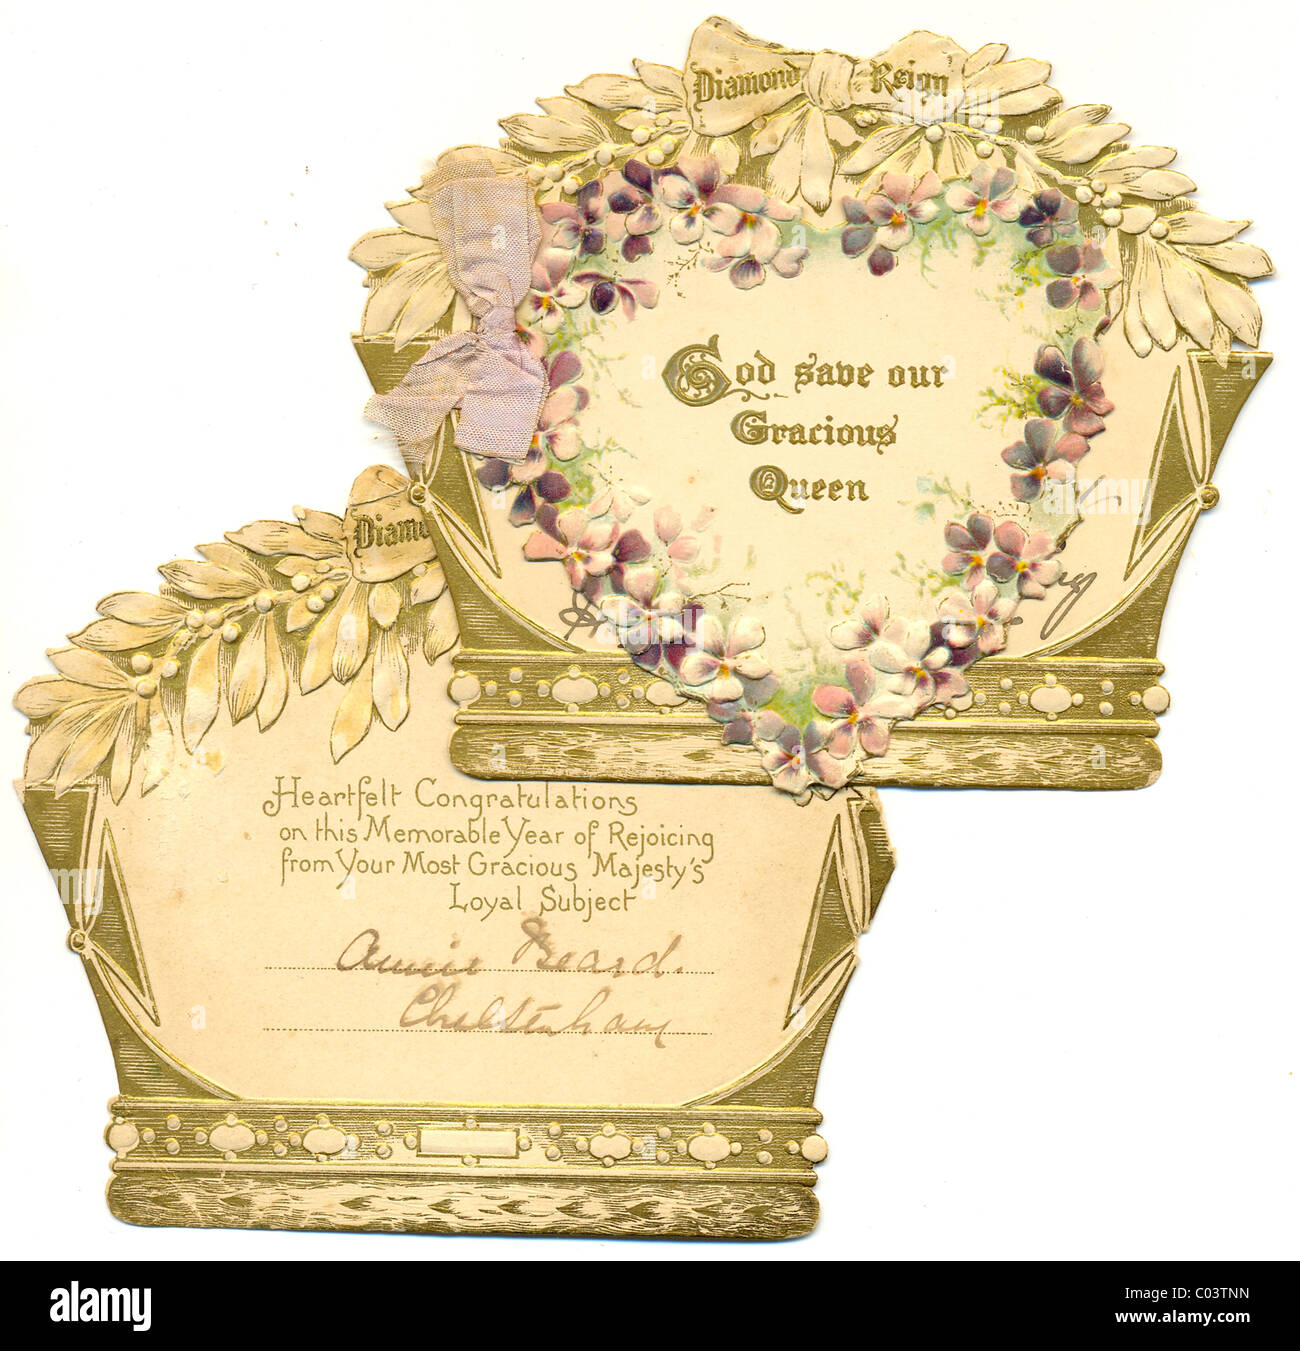 greeting card celebrating the Diamond Jubilee of Queen Victoria - Stock Image